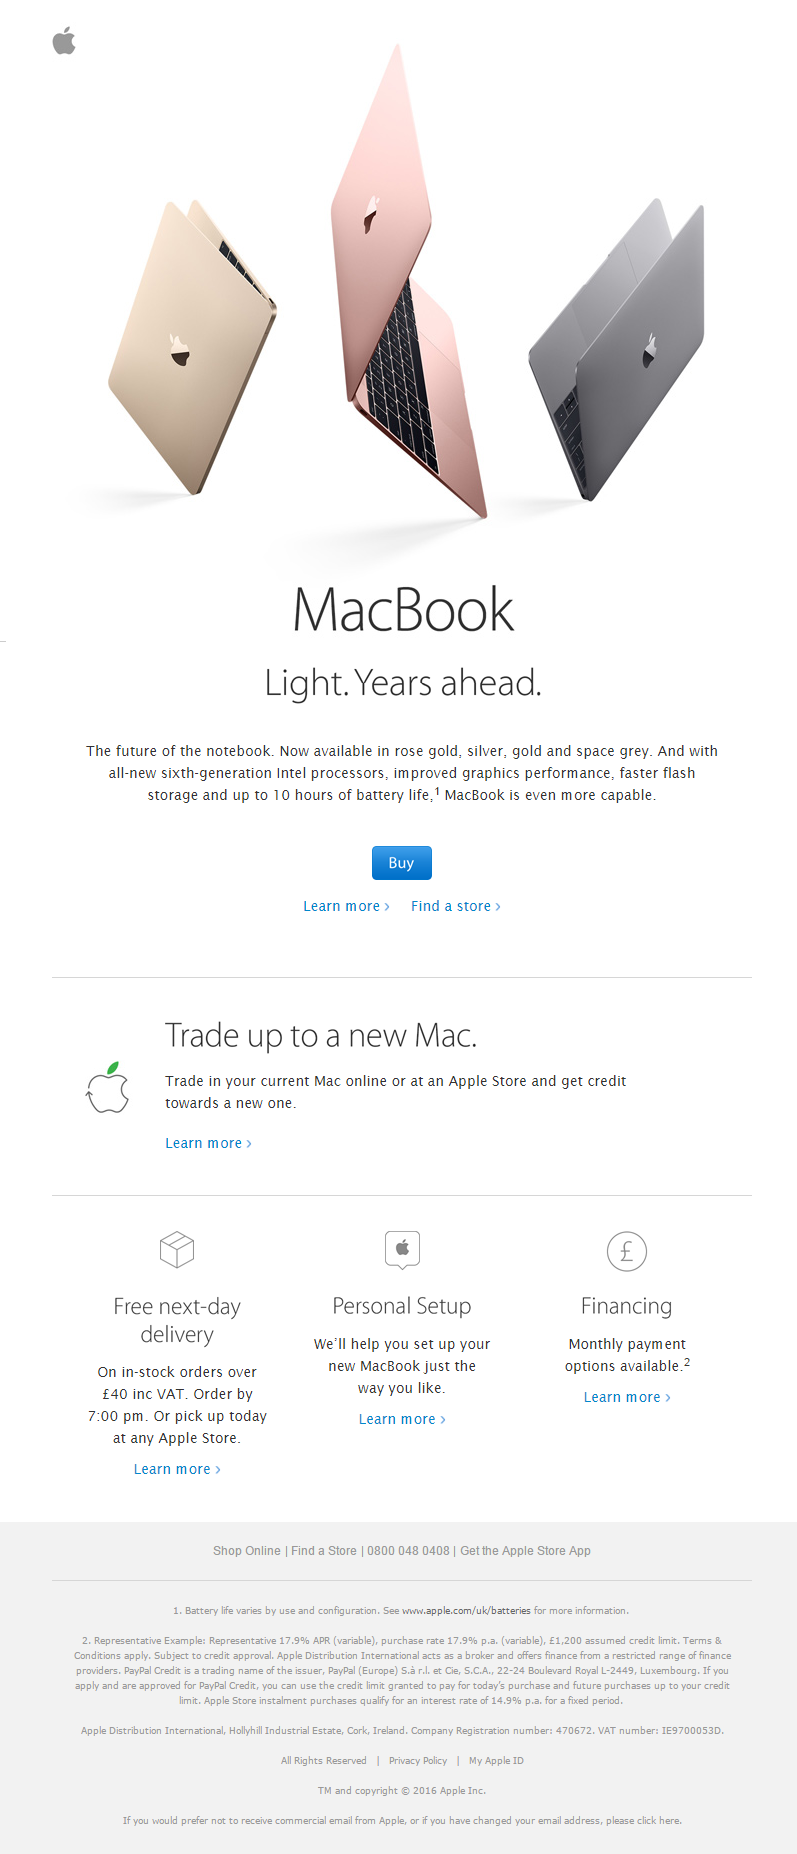 Product Email From Apple Emailmarketing Email Marketing Laptops Mac Computer Technology Product Recommendation Hitech Apple Store Apple Apple Watch